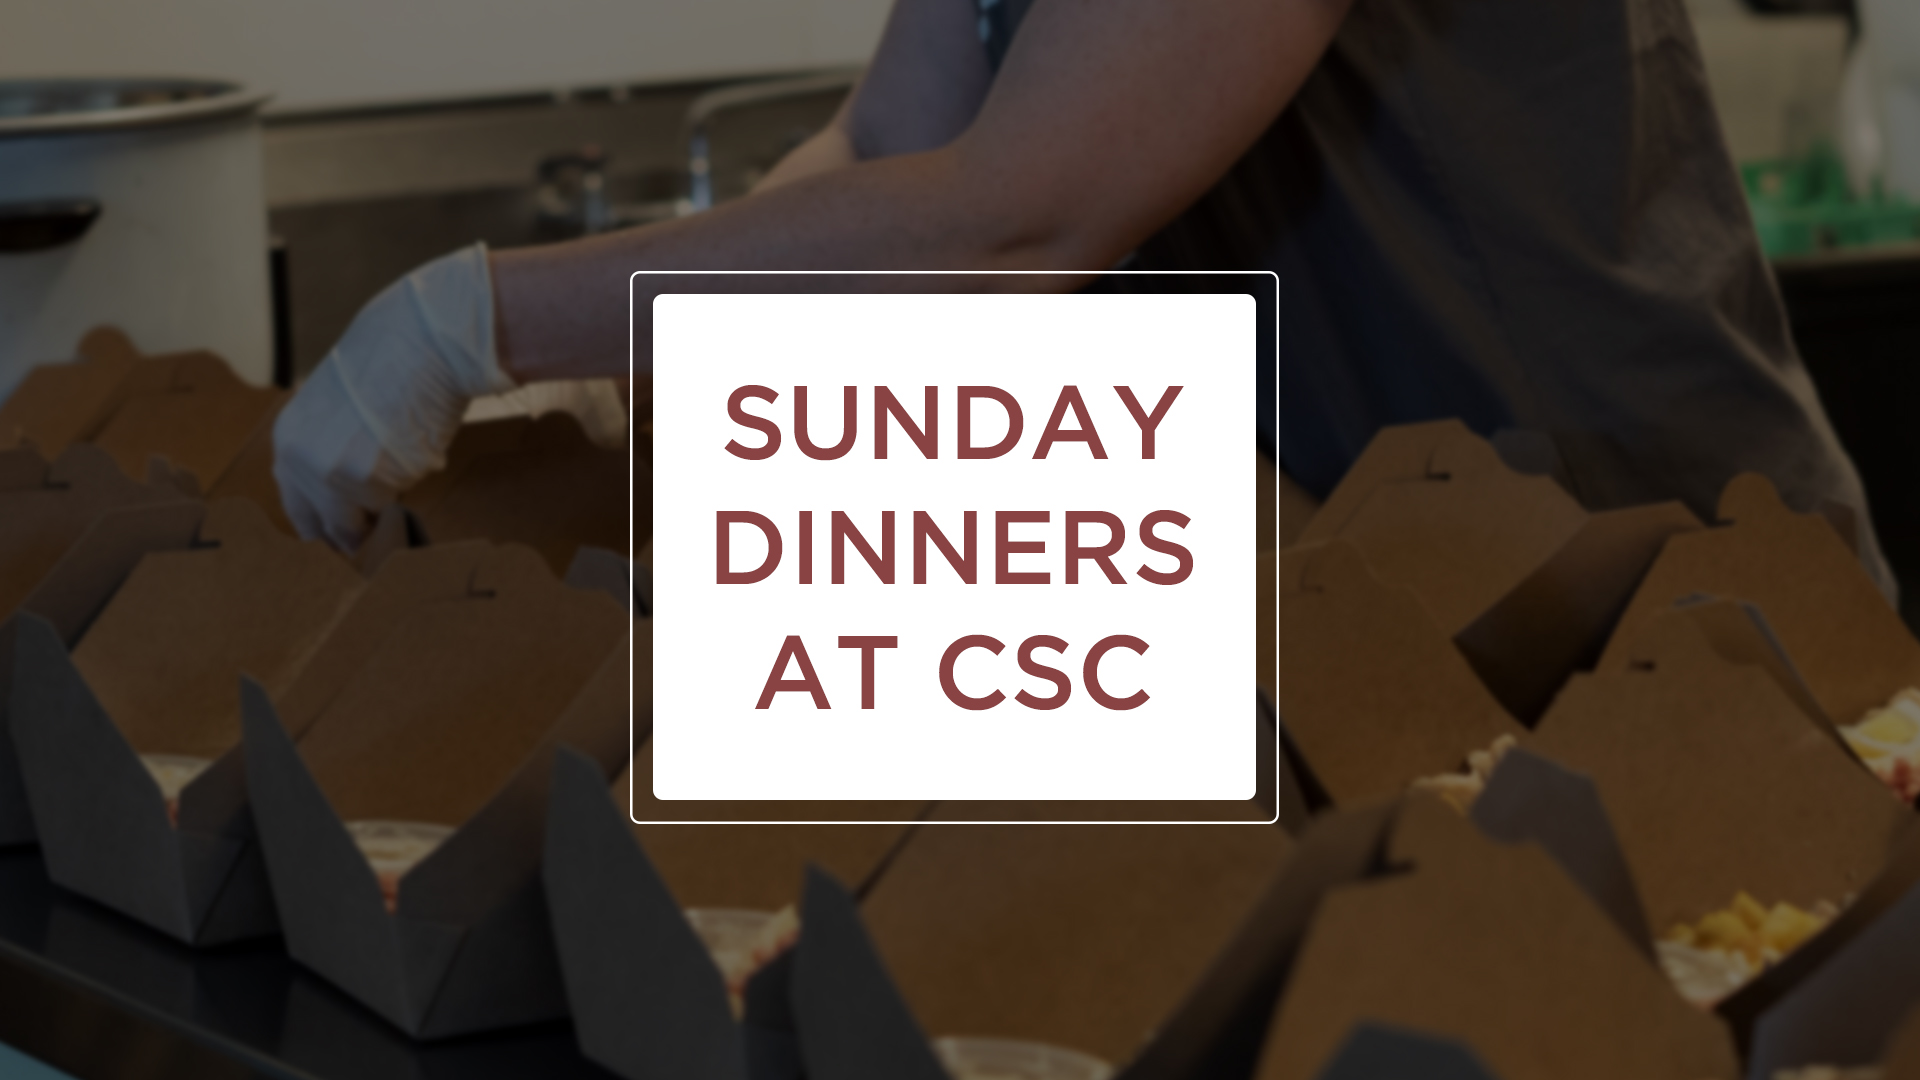 Sunday Dinners at CSC